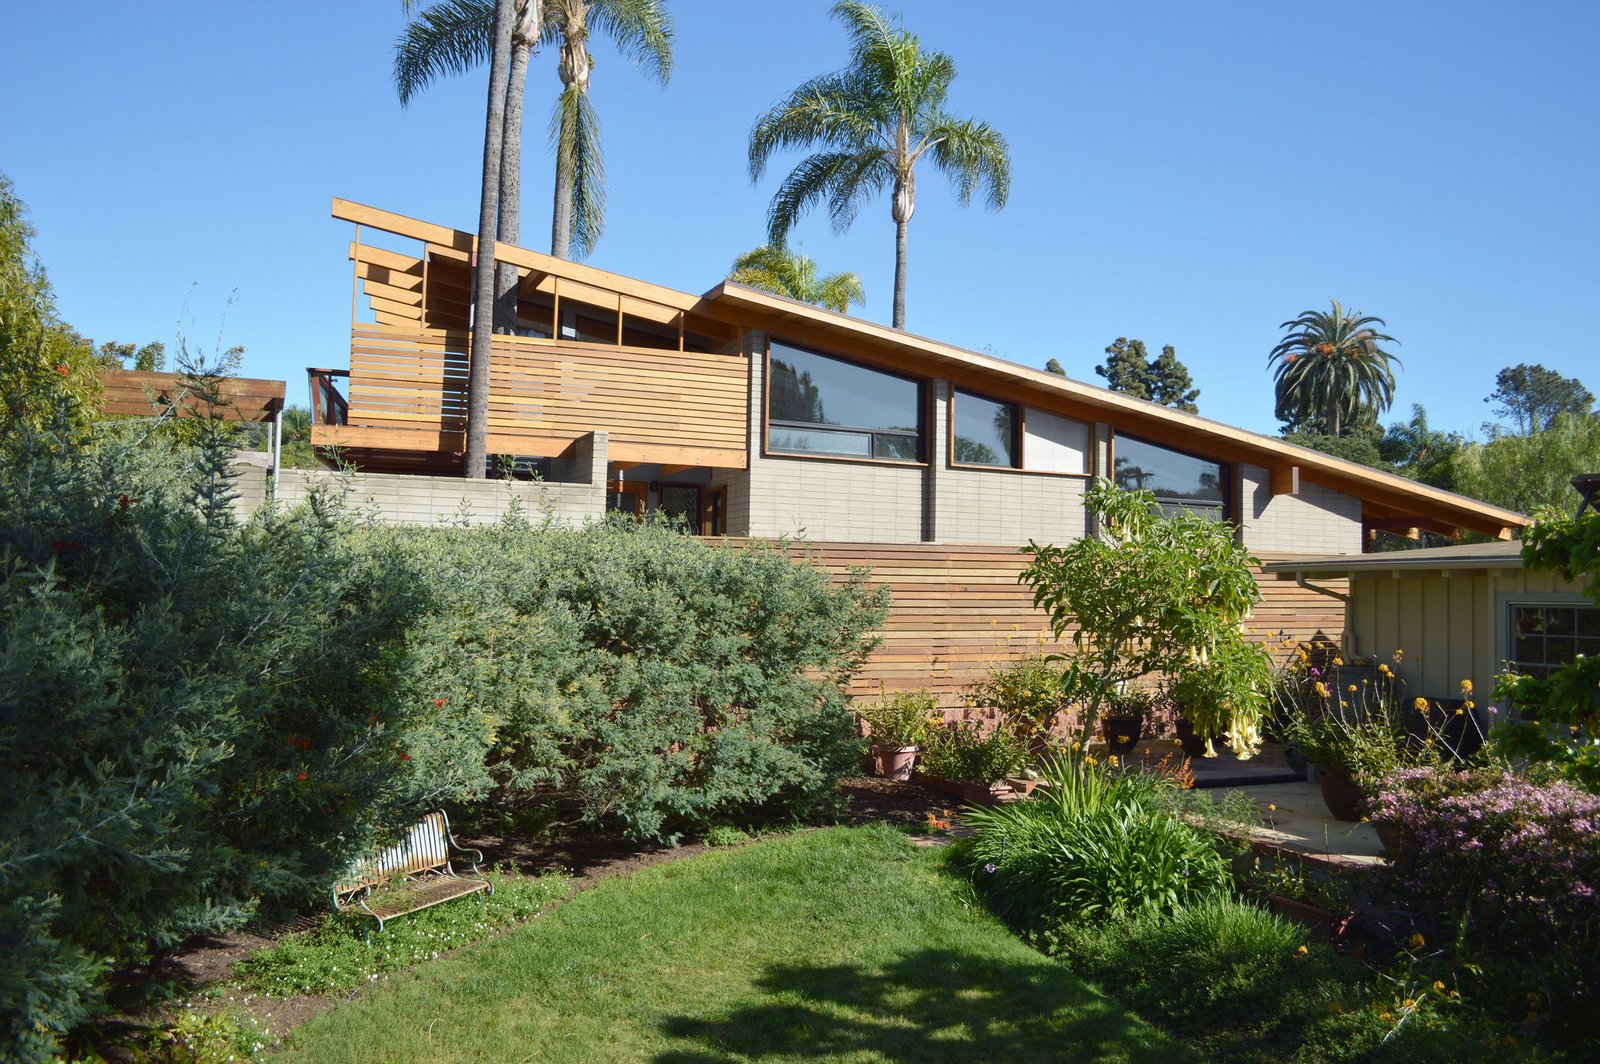 Architect Steven Lombardi is responsible for El Dorado, a modern beauty in La Jolla Shores. Facing a multi-generational home originally built in 1954, Lombardi fully renovated both the interior and exterior. To bring the house up-to-date while preserving a nod to the past, he sandblasted the existing wood structure to expose its original Douglas fir post-and-beam frame.  Photo 3 of 12 in It's Time to Kick Off Dwell Home Tours—First Stop, San Diego